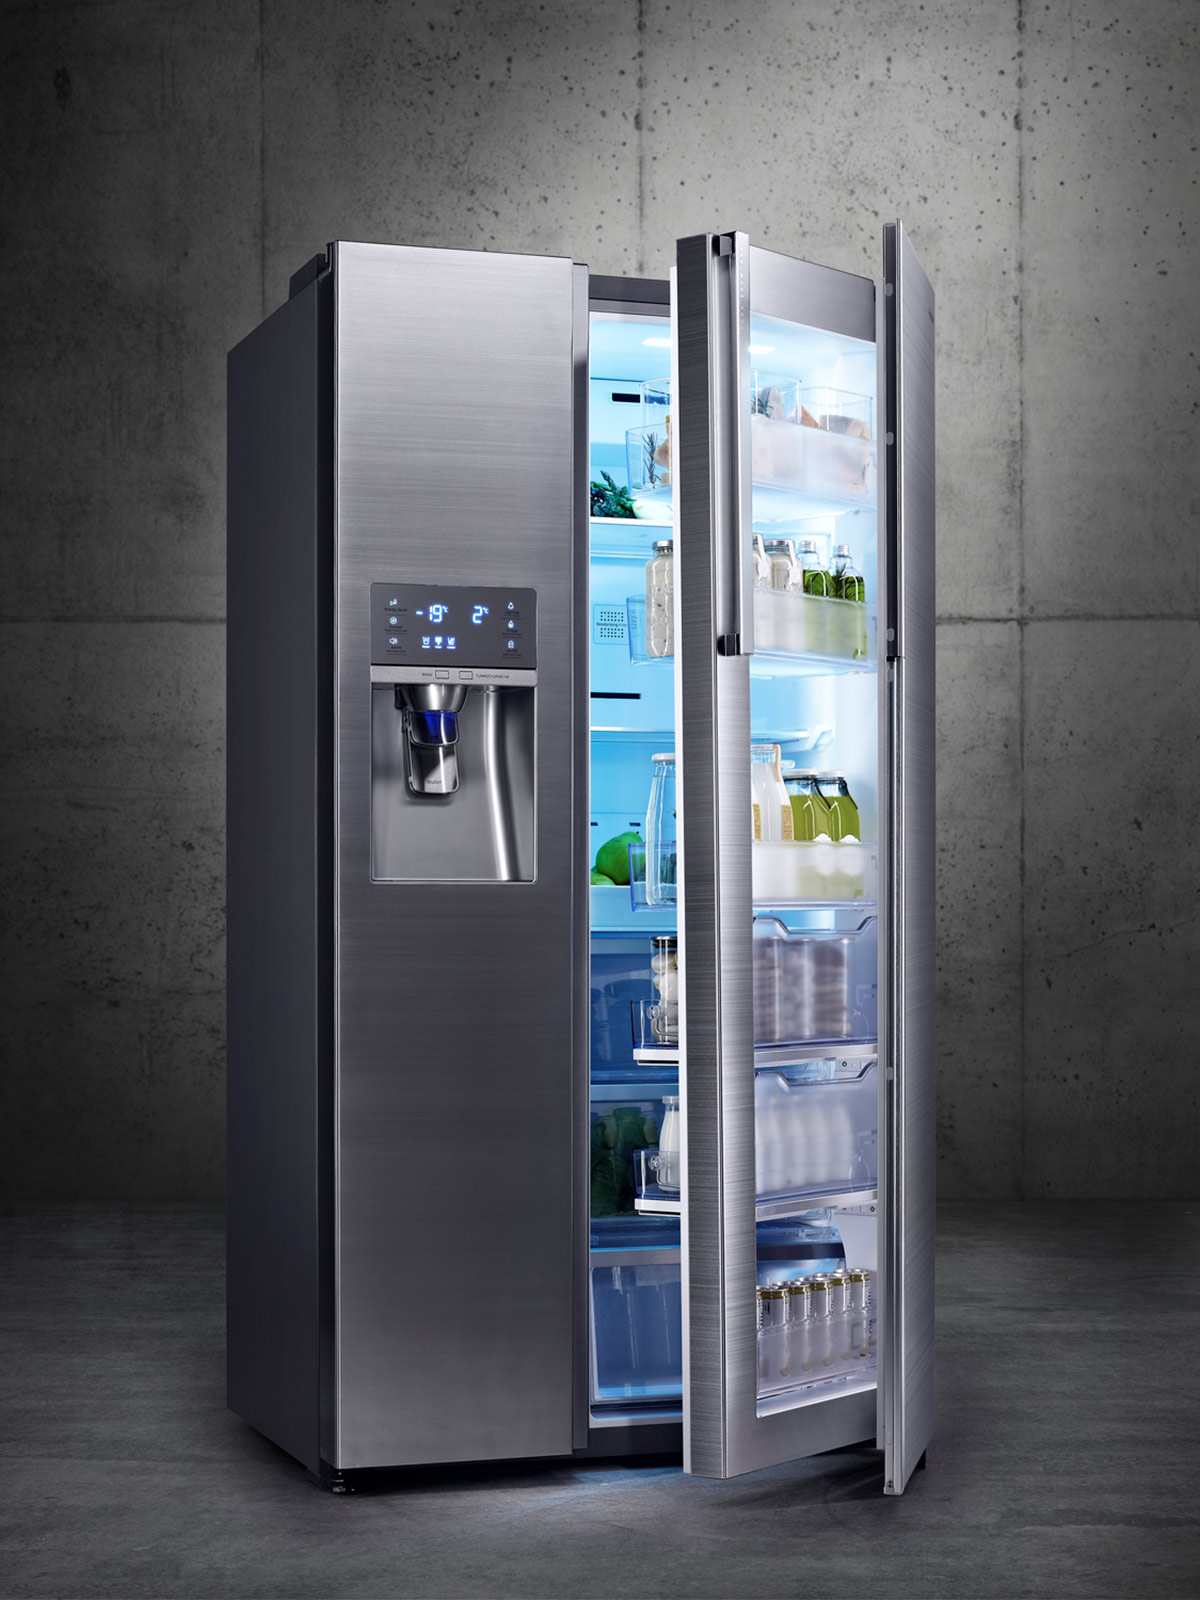 Awesome Frigo Samsung Doppia Porta Contemporary - harrop.us ...